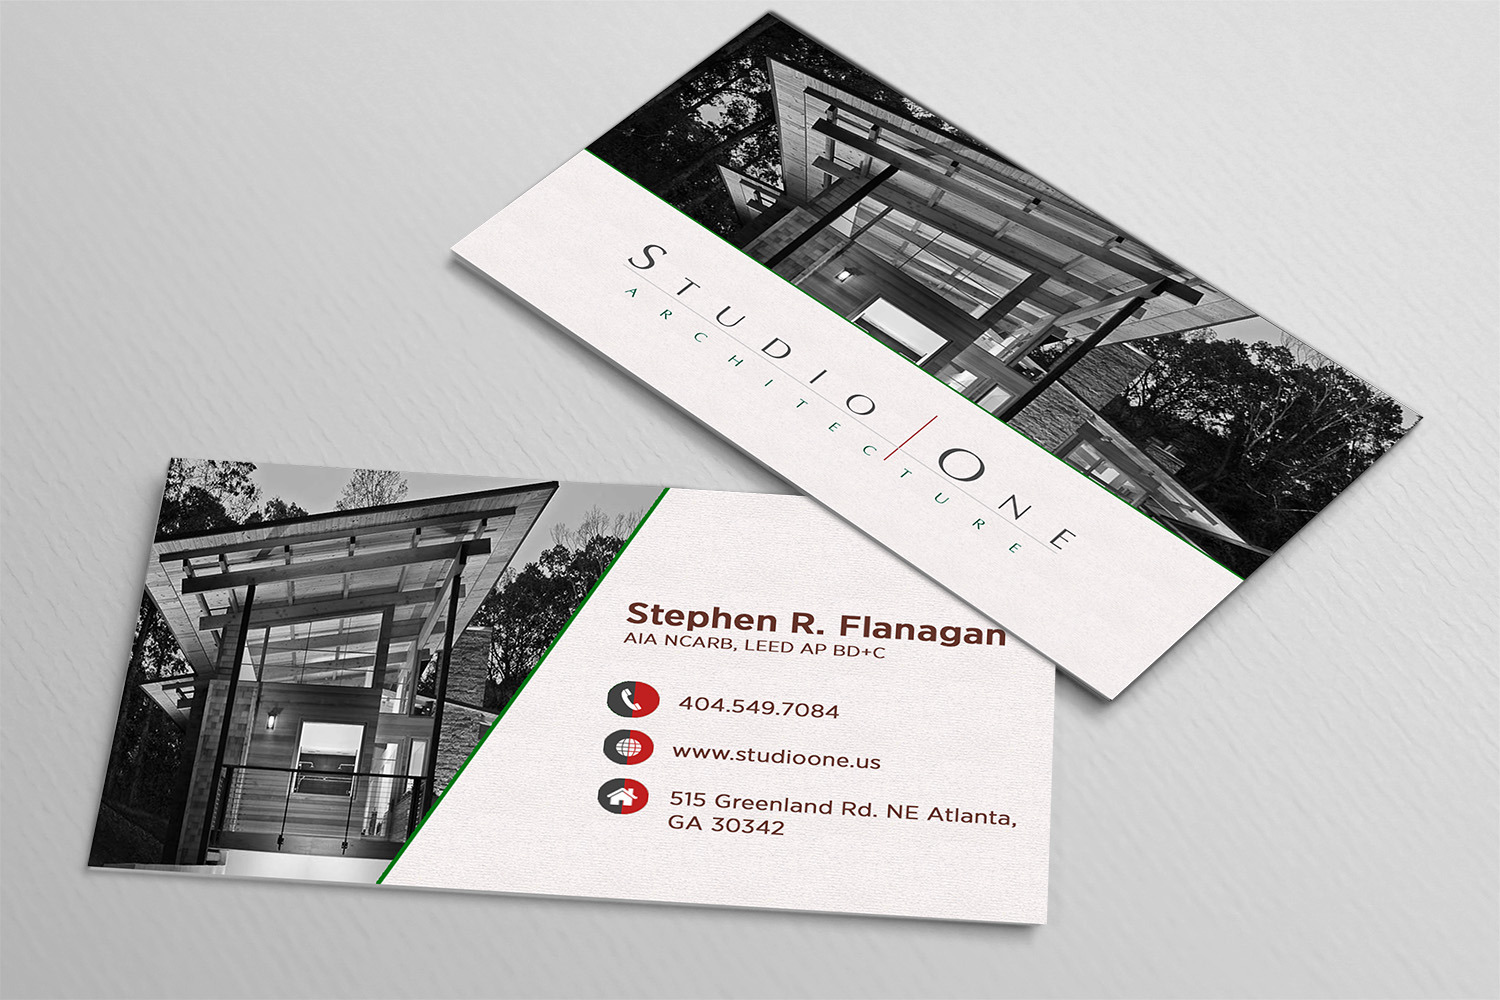 business card design by avde17sharif for studio one architecture design 12973498 - Architect Business Card